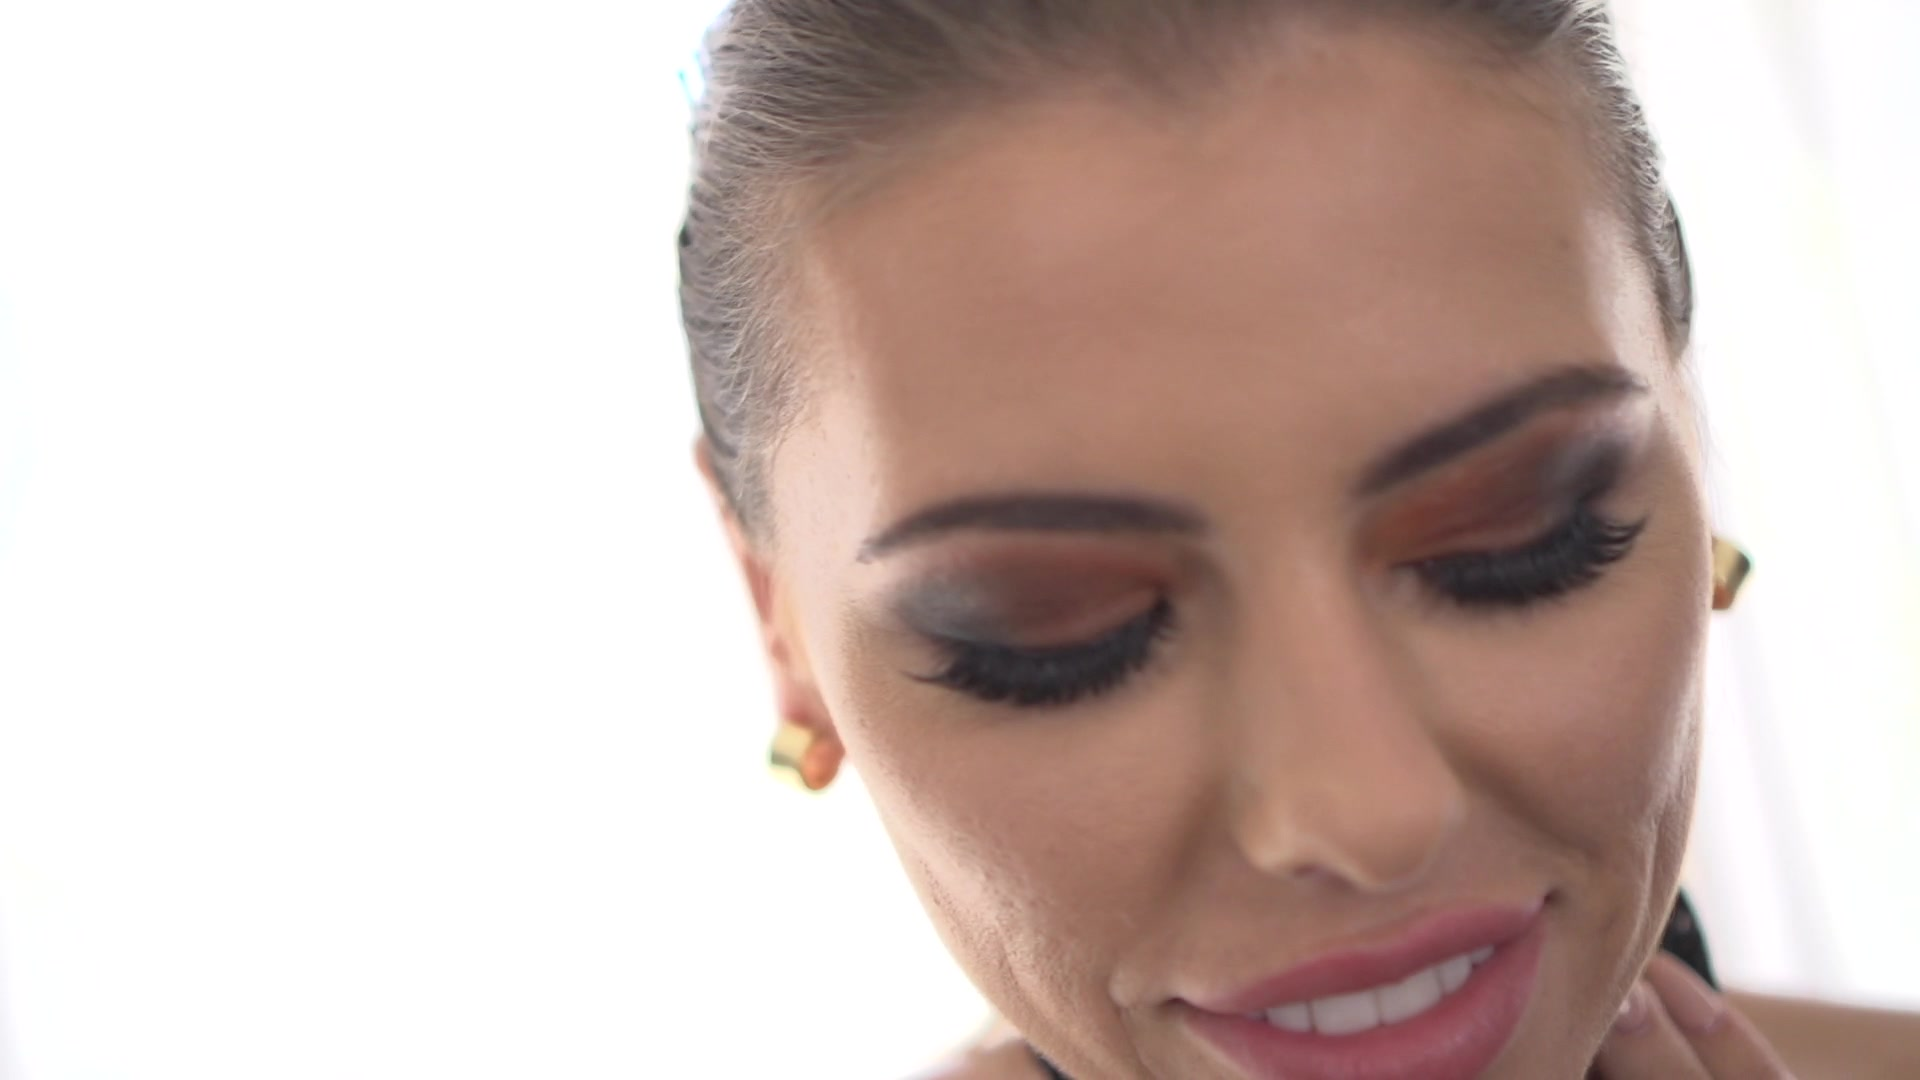 Scene with Adriana Chechik - image 1 out of 20